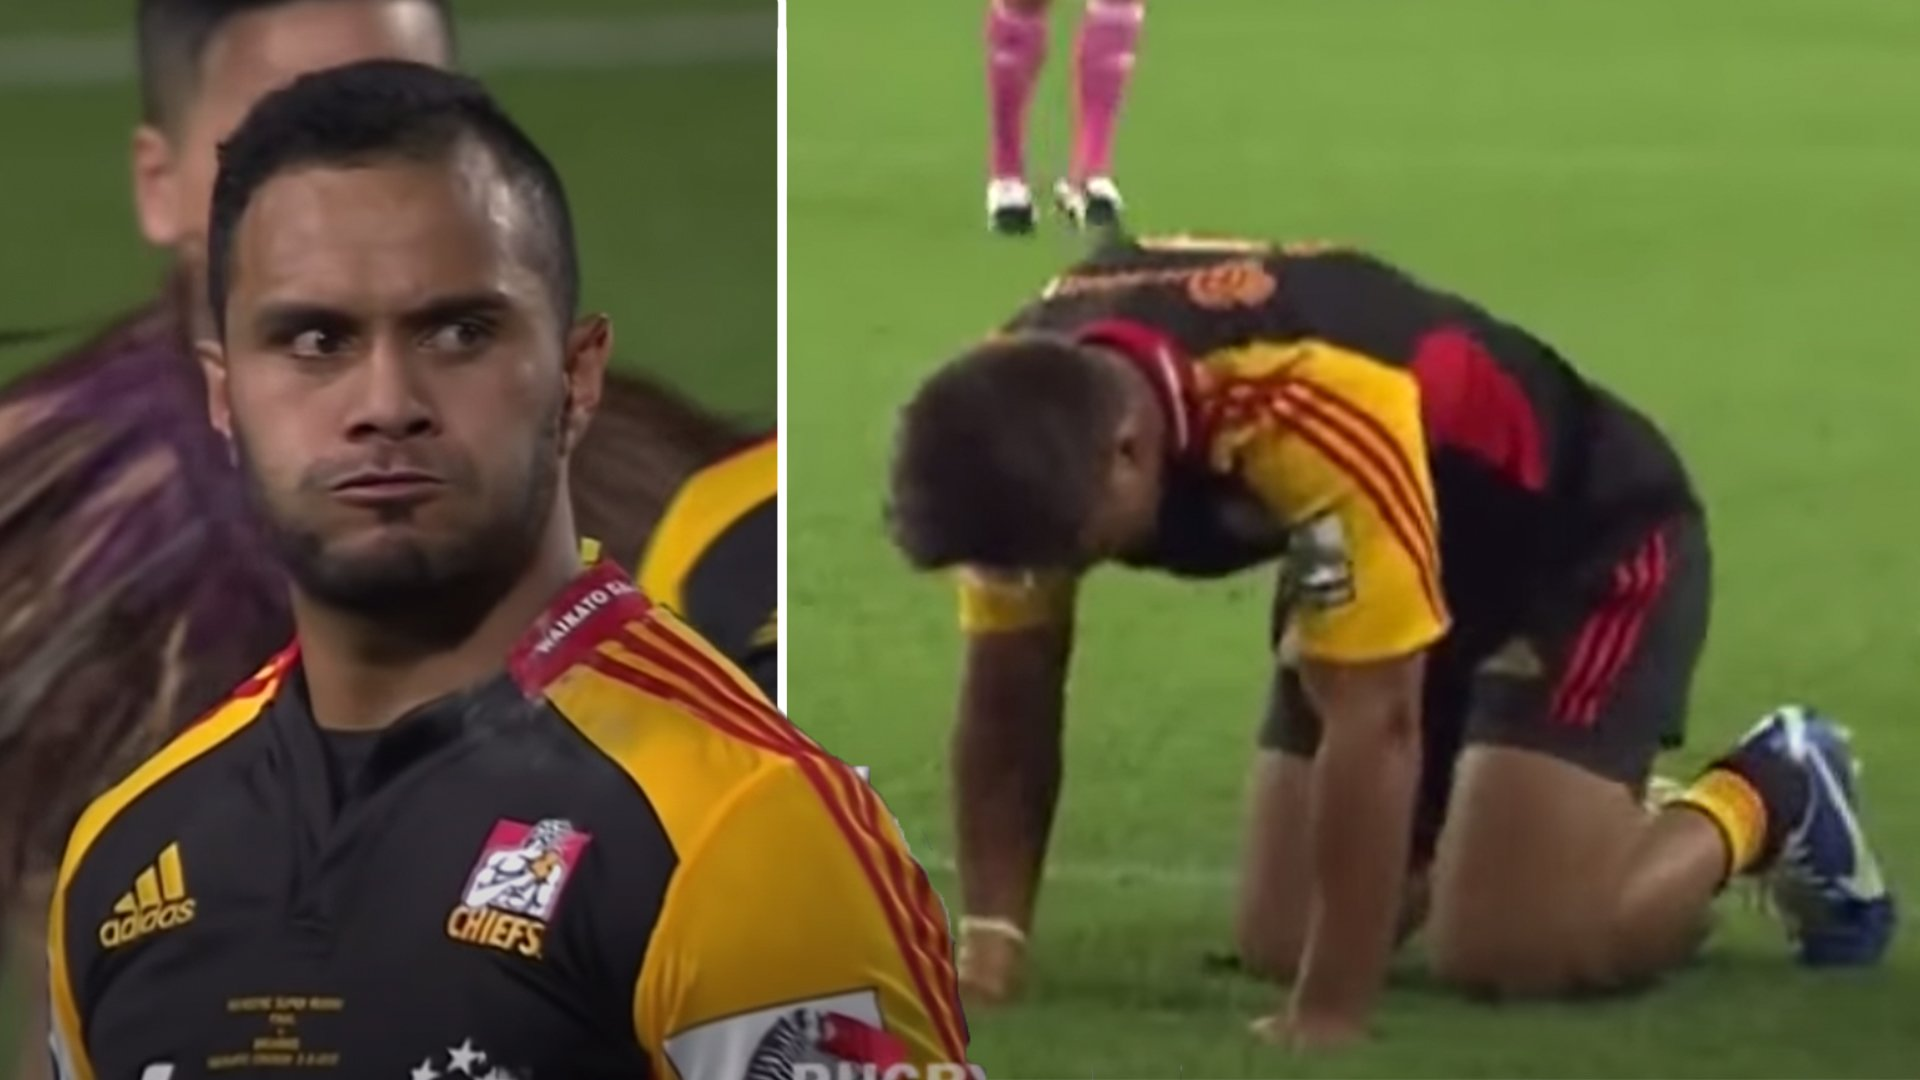 The 3 minutes that really showed what Super Rugby has come to